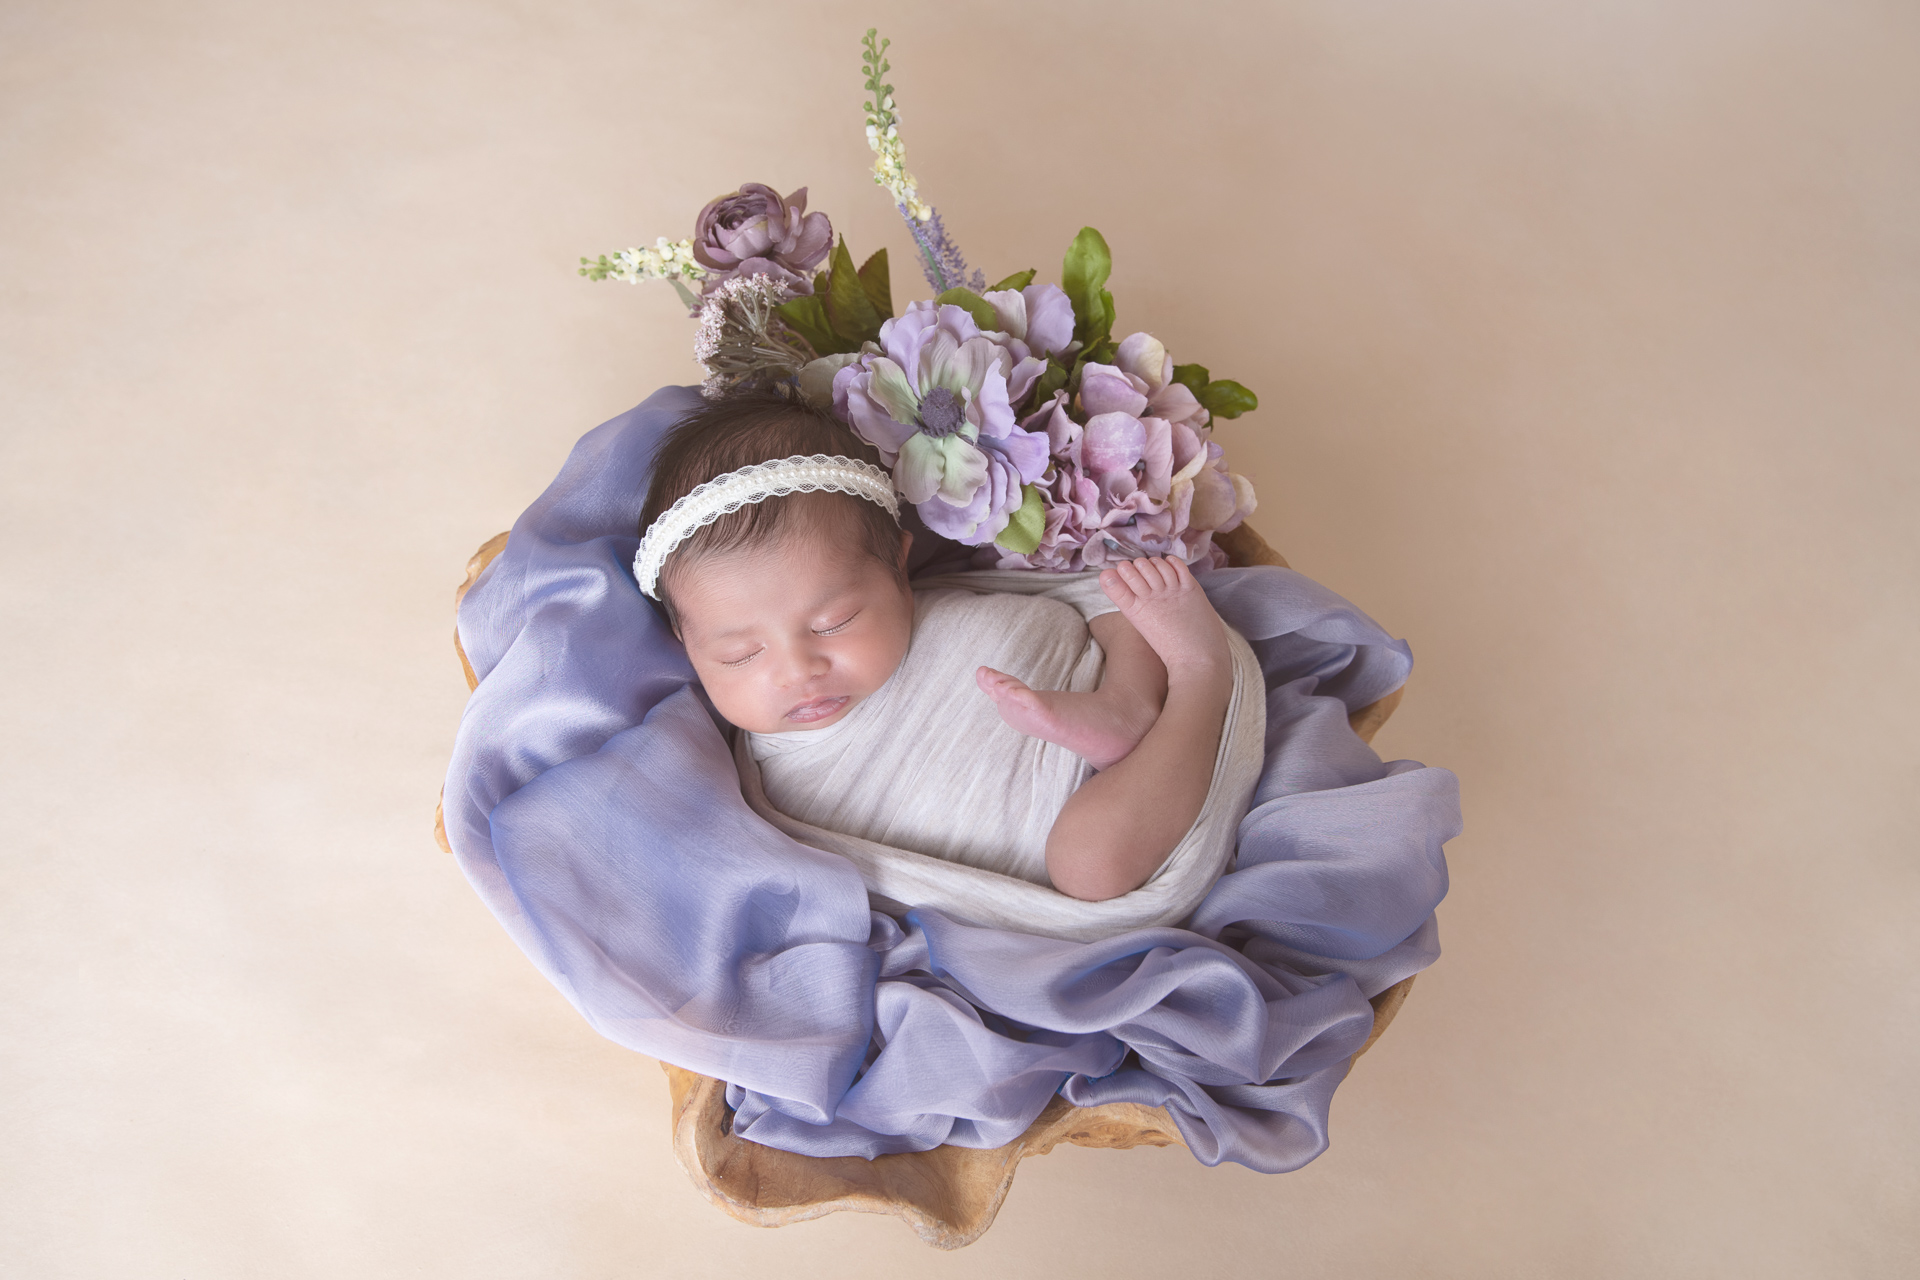 Newborn rests on irregular shape wood prop decorated by a purple fabric. She wears light gray wrap and white headband. Flowers decorate de scene.